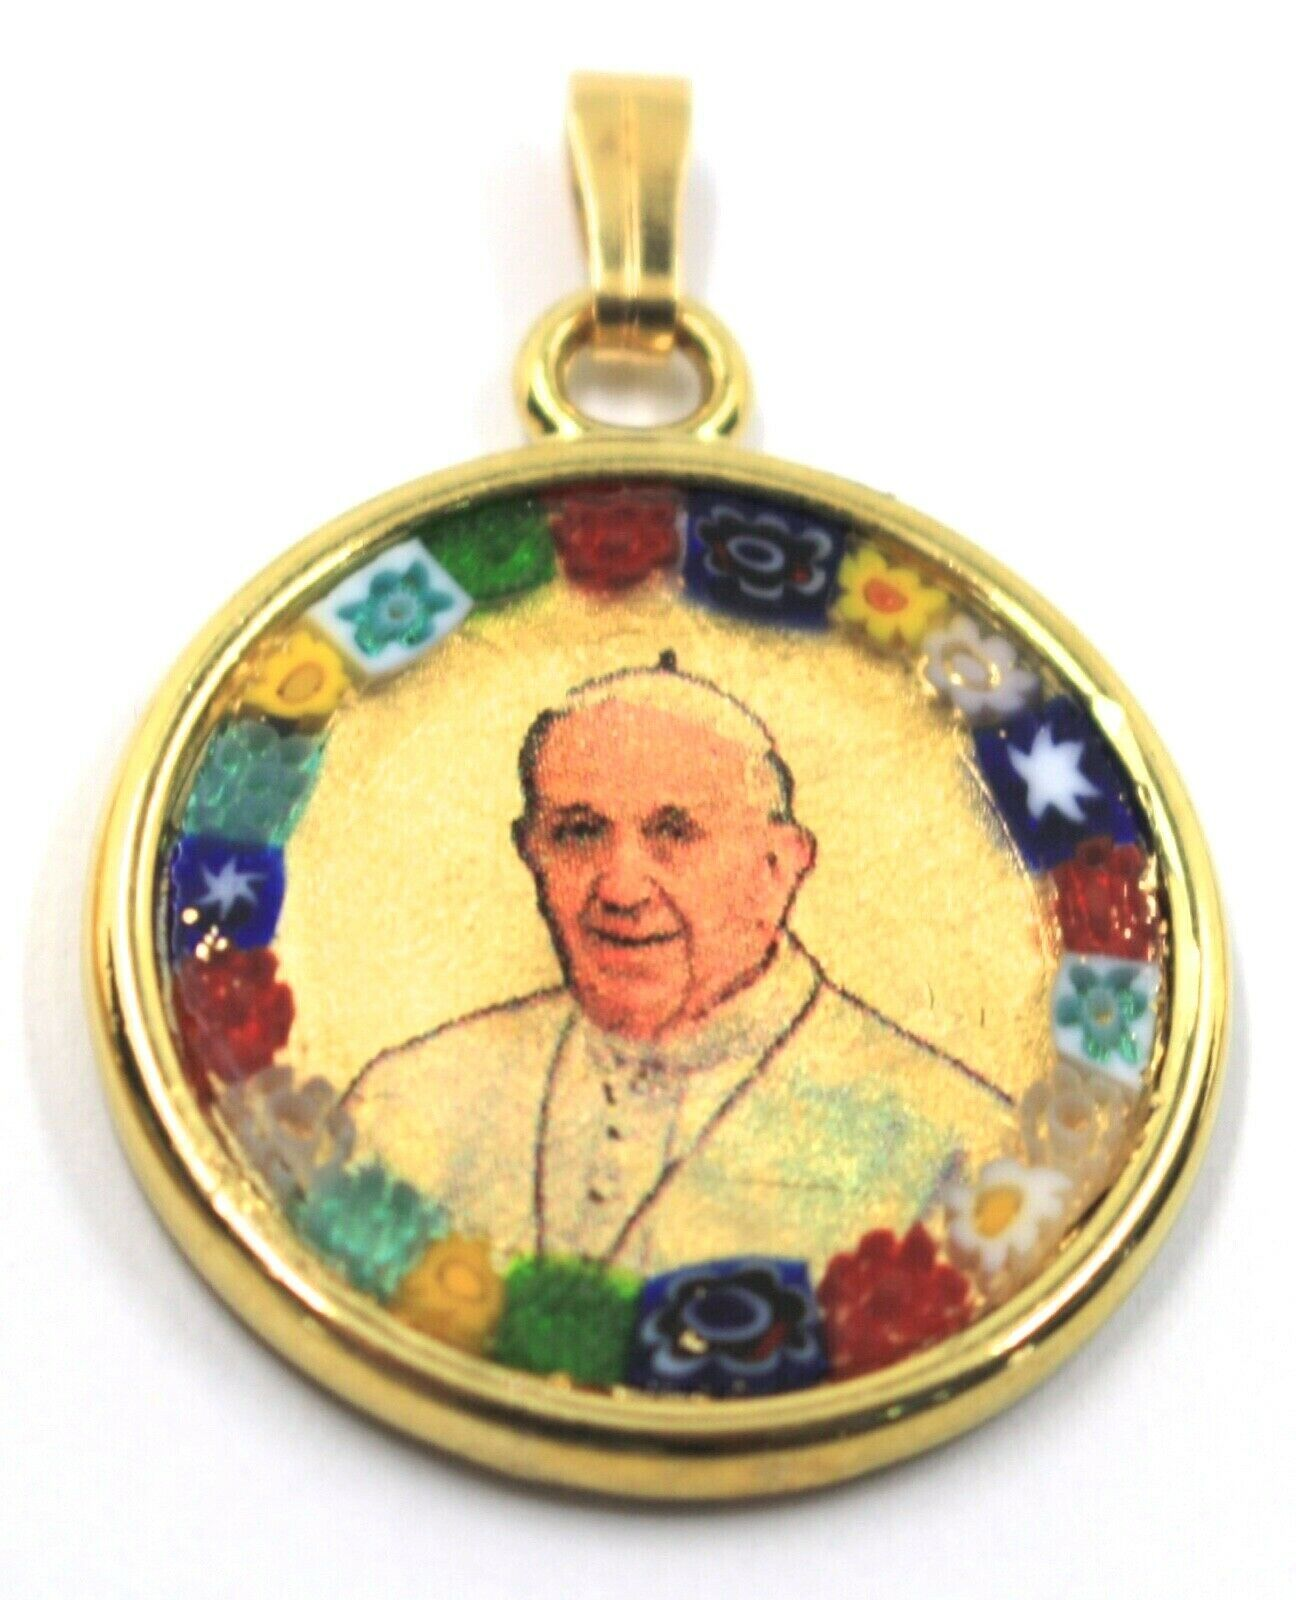 "MURANO GLASS ROUND MEDAL PENDANT, POPE FRANCIS, FRANCESCO, 25mm 1"", FLOWER FRAME"